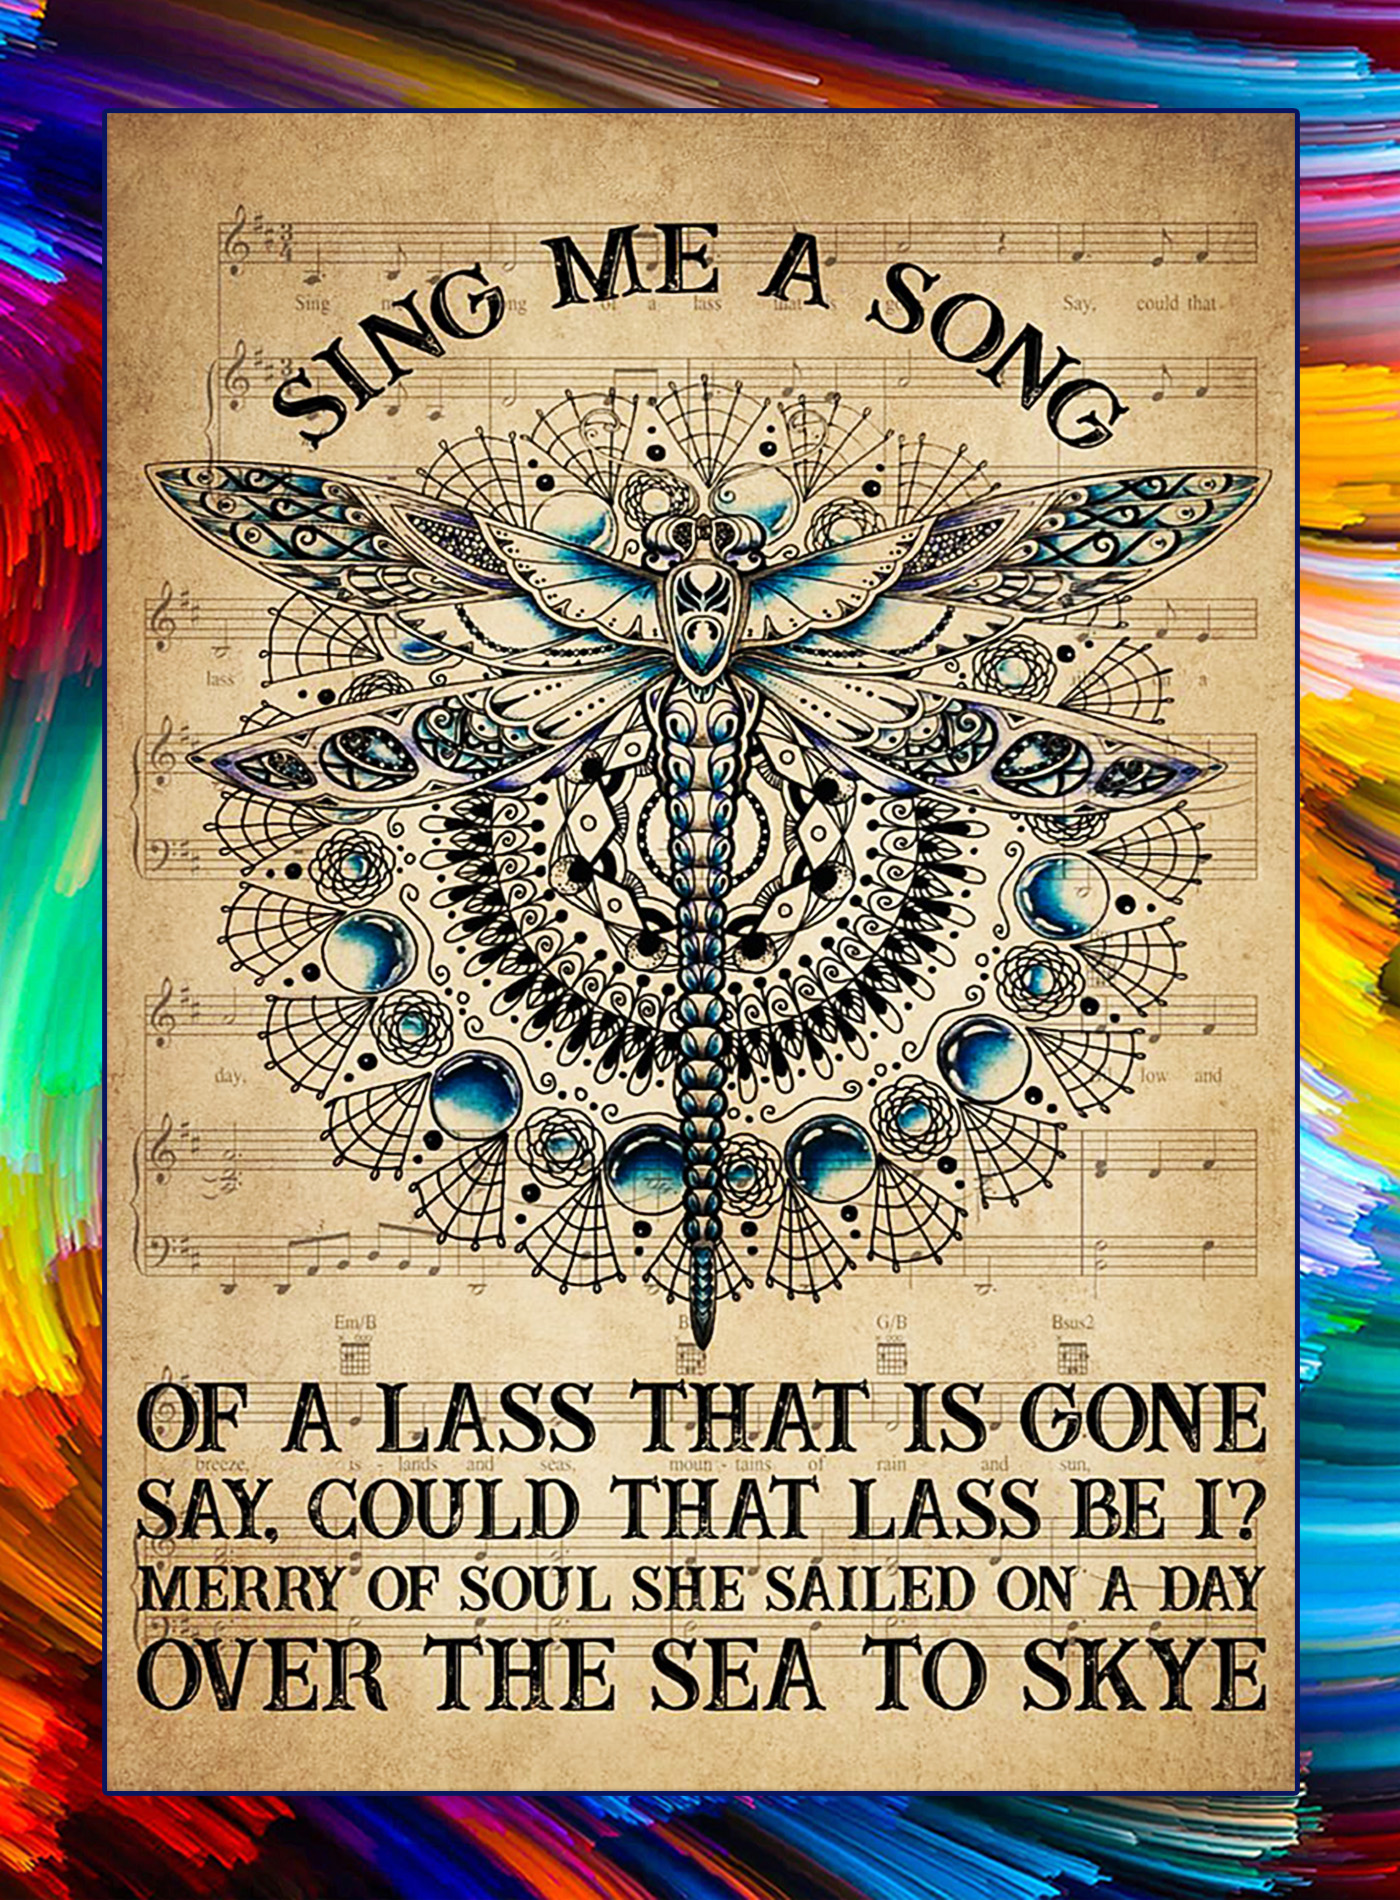 Dragonfly sing me a song poster - A1